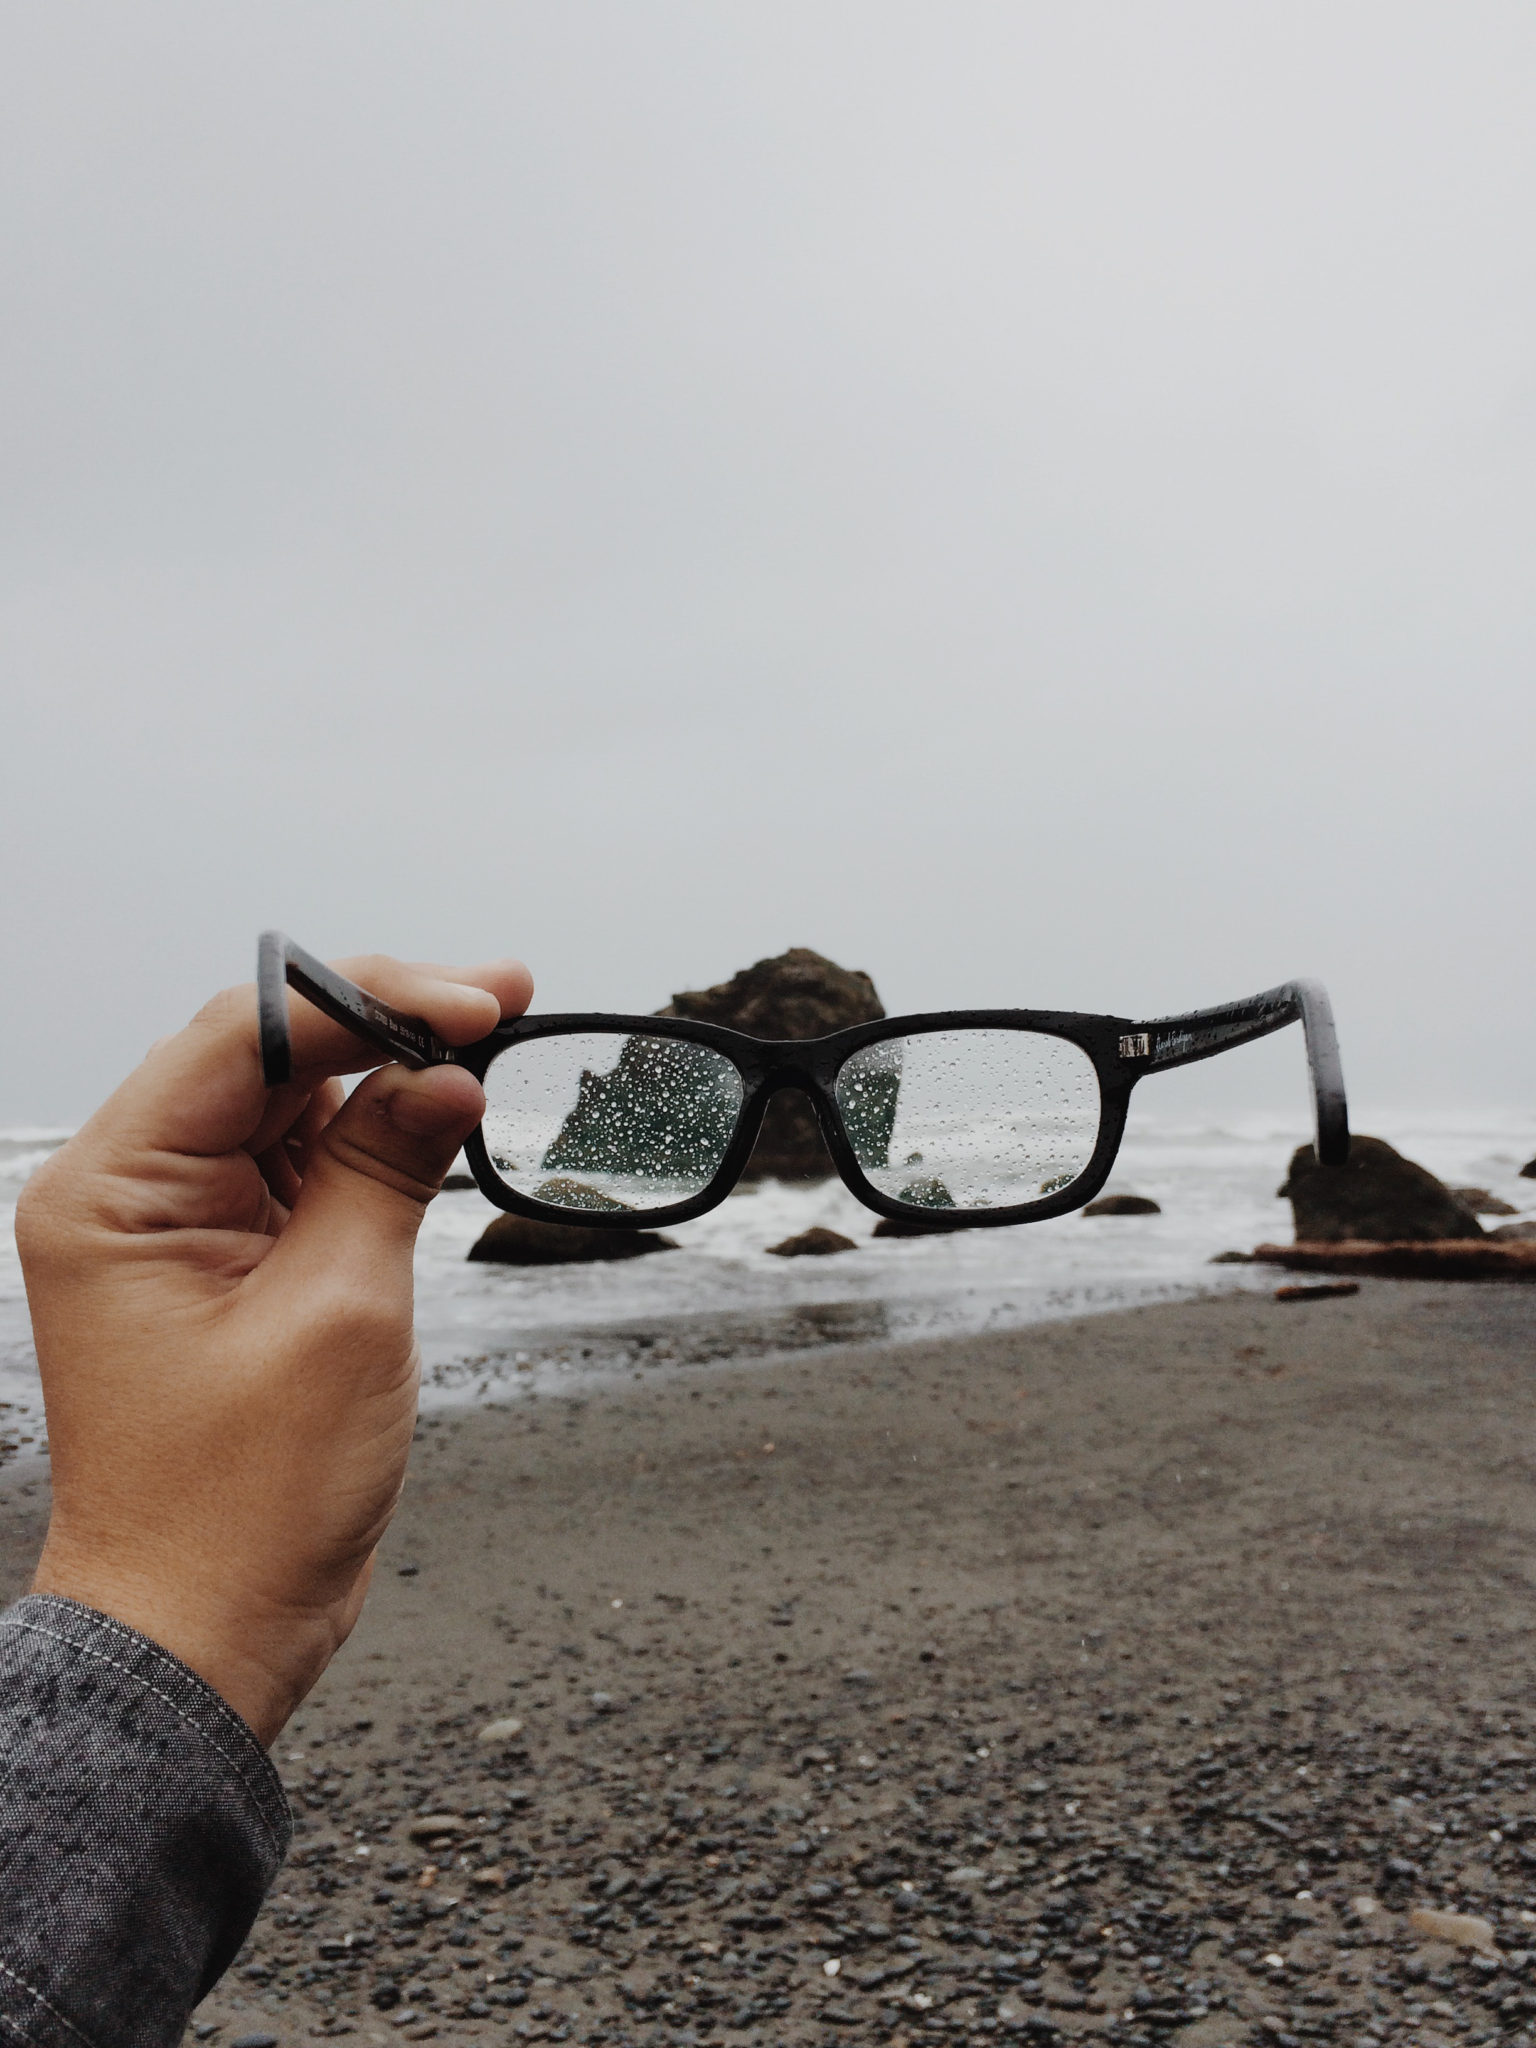 Person holding eyeglasses in the rain by Colby Schenck from stocksnap.io